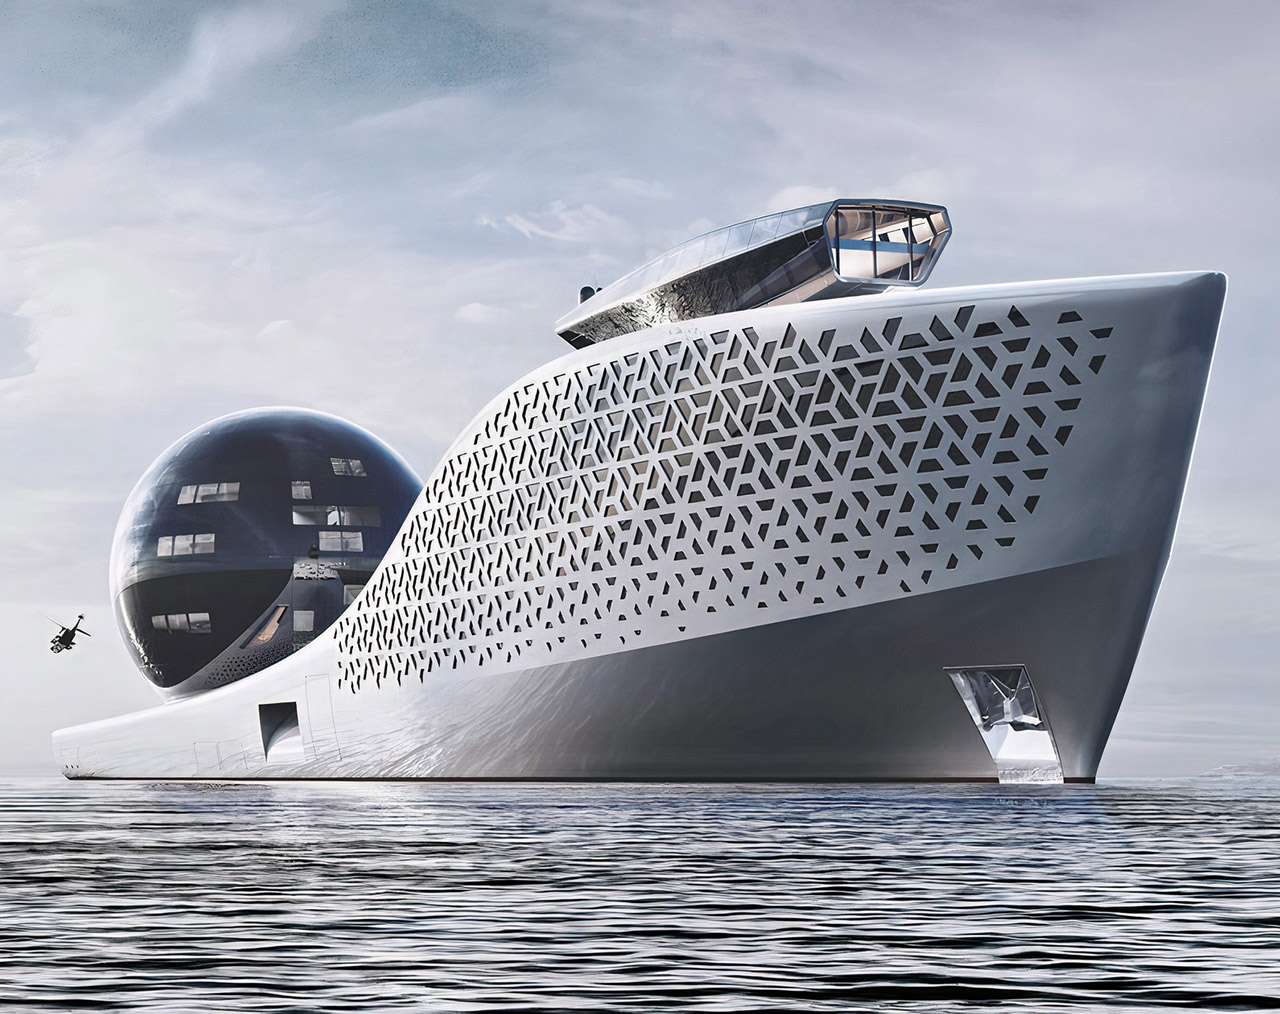 Earth 300 First Nuclear-Powered Superyacht